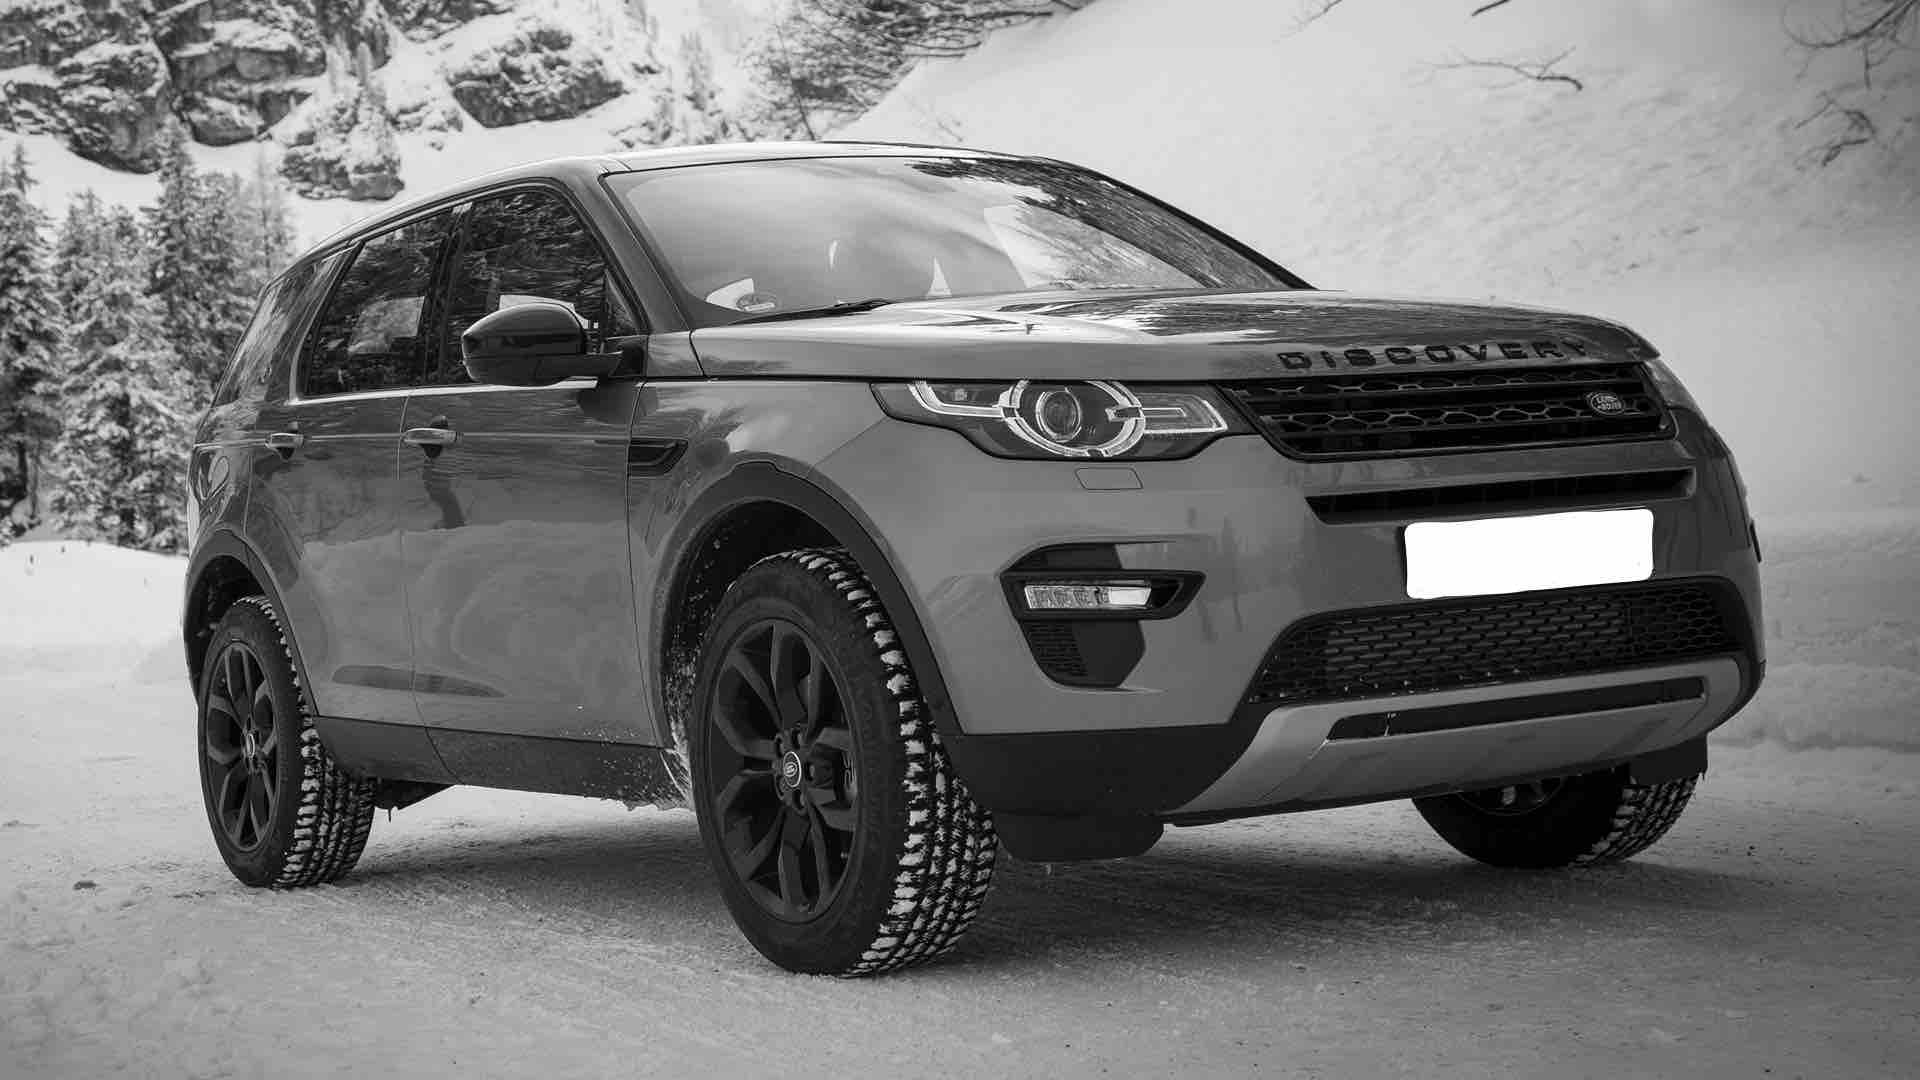 Luxury-in-motion-chauffeur-winter-4x4-service-surrey-land-rover-discovery-sport.jpg